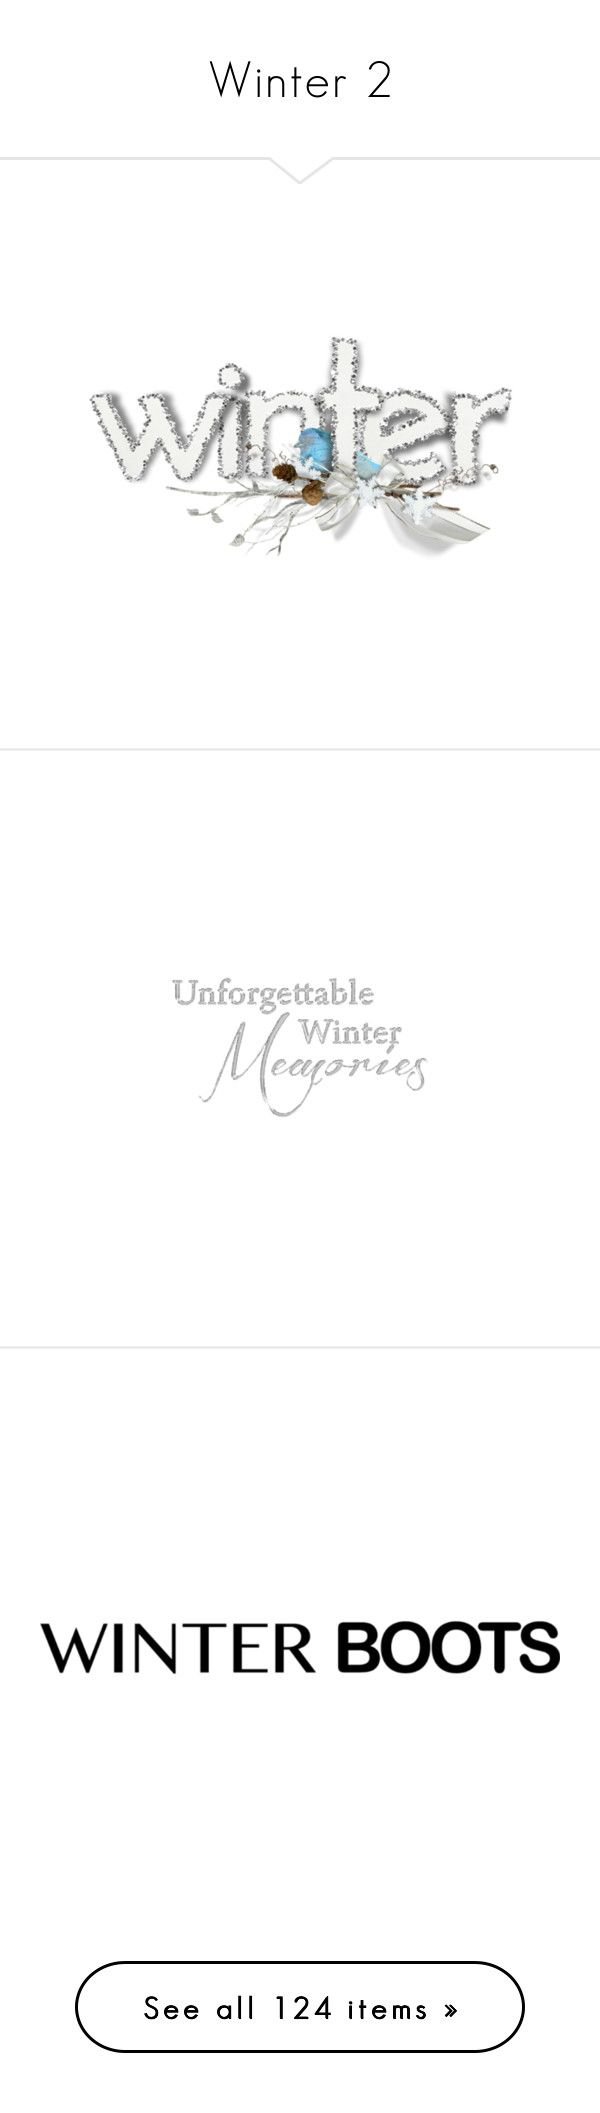 """""""Winter 2"""" by franceseattle ❤ liked on Polyvore featuring winter, christmas, letters, natale, text, phrase, quotes, saying, words and winter text"""